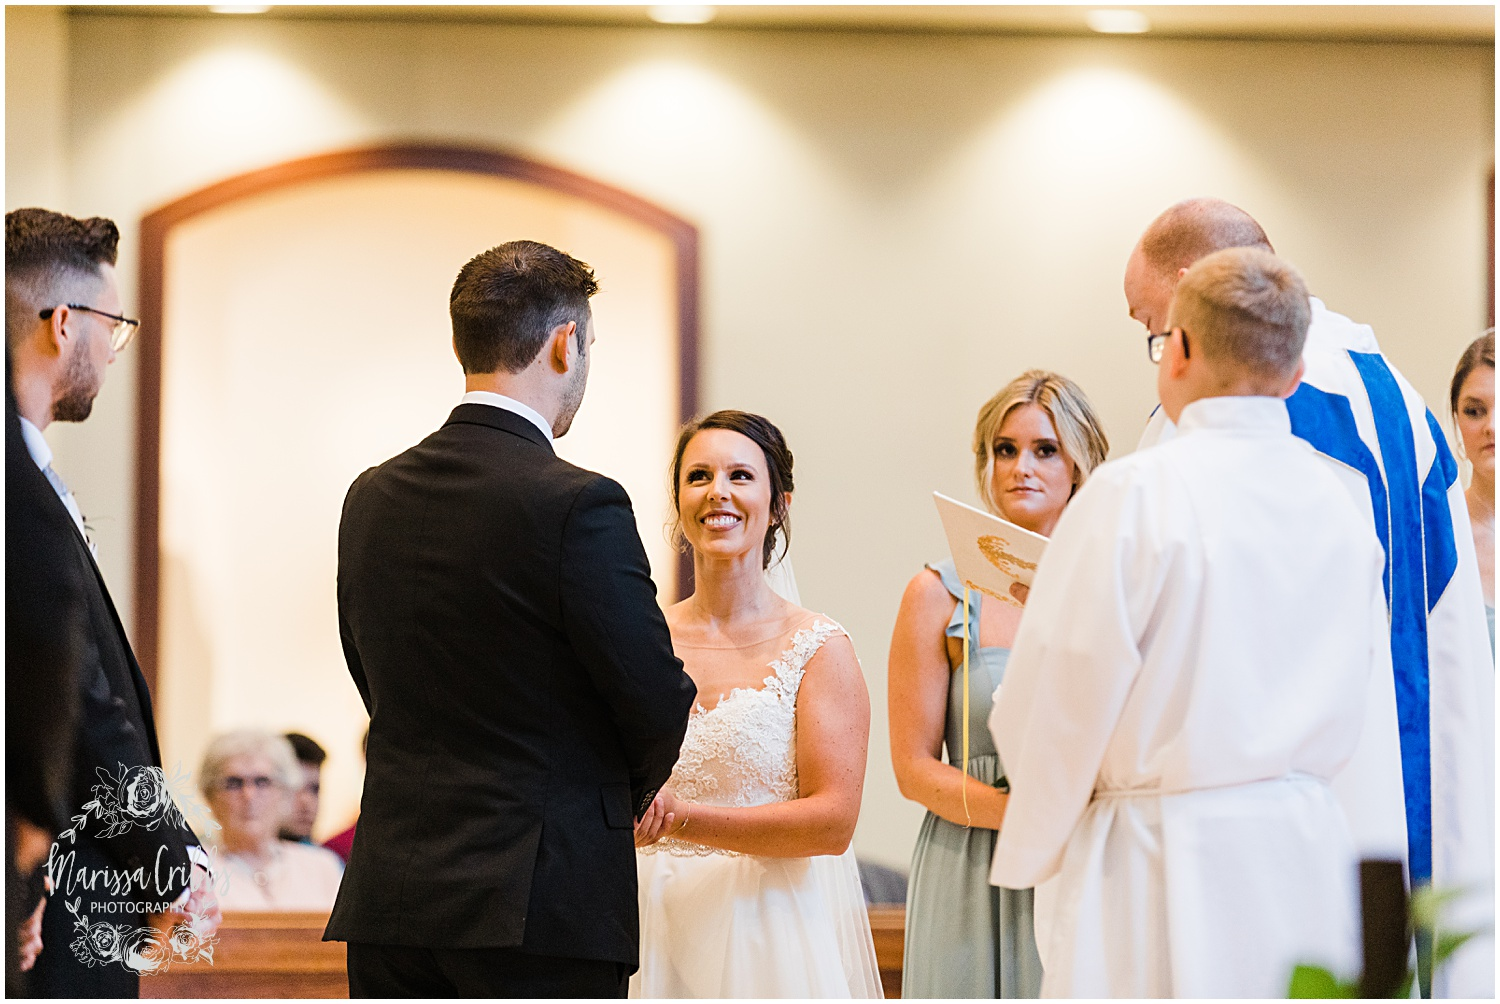 KELLY & MITCH MARRIED BLOG | MARISSA CRIBBS PHOTOGRAPHY | THE EVERLY EVENT SPACE_8839.jpg